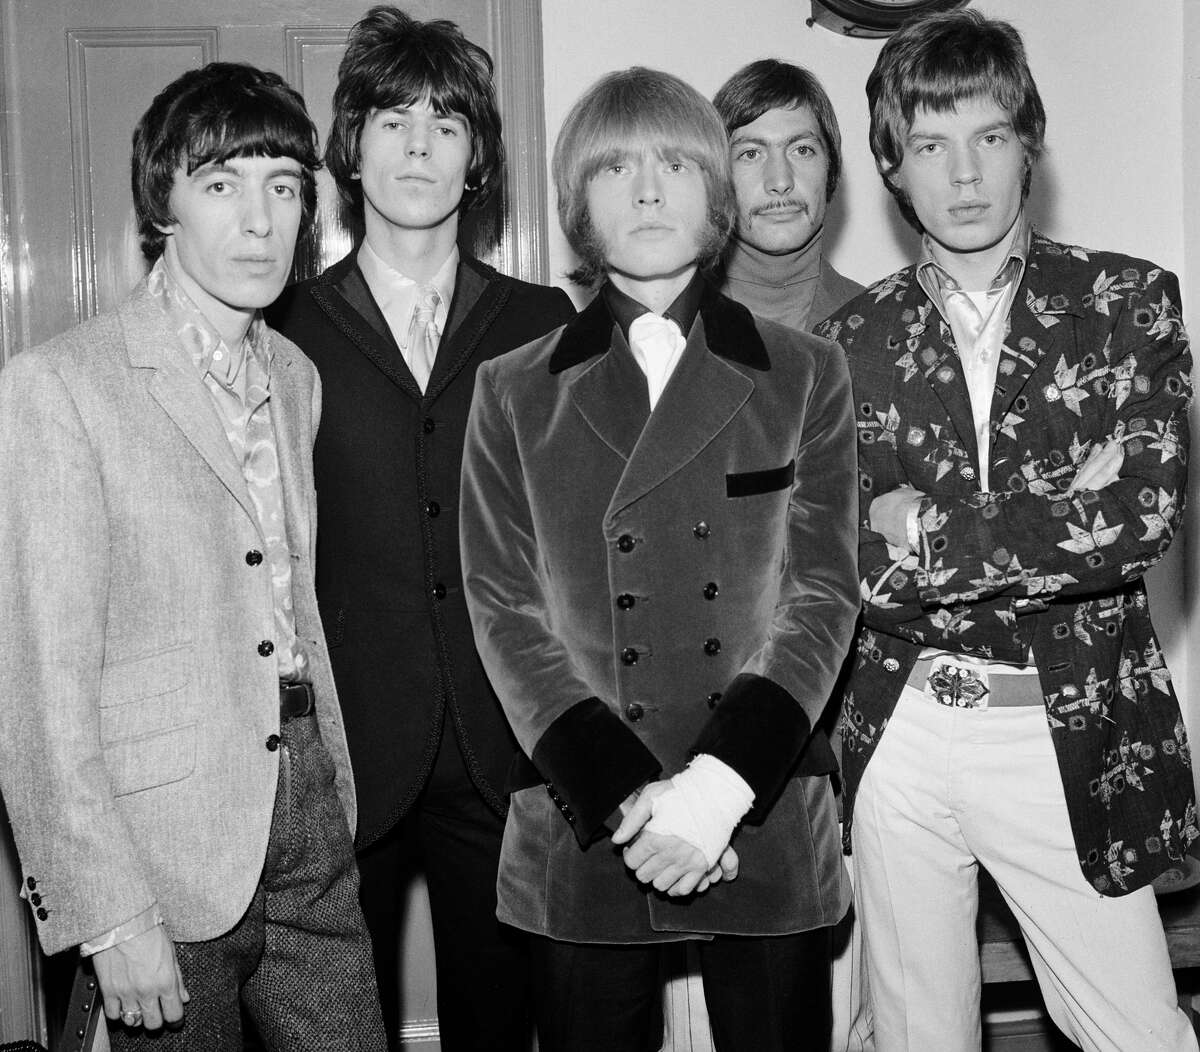 The Rolling Stones at The Royal Albert Hall, their first British Tour in a year. Left to right: Bill Wyman, Keith Richards, Brian Jones, Charlie Watts and Mick Jagger. 23rd September 1966.